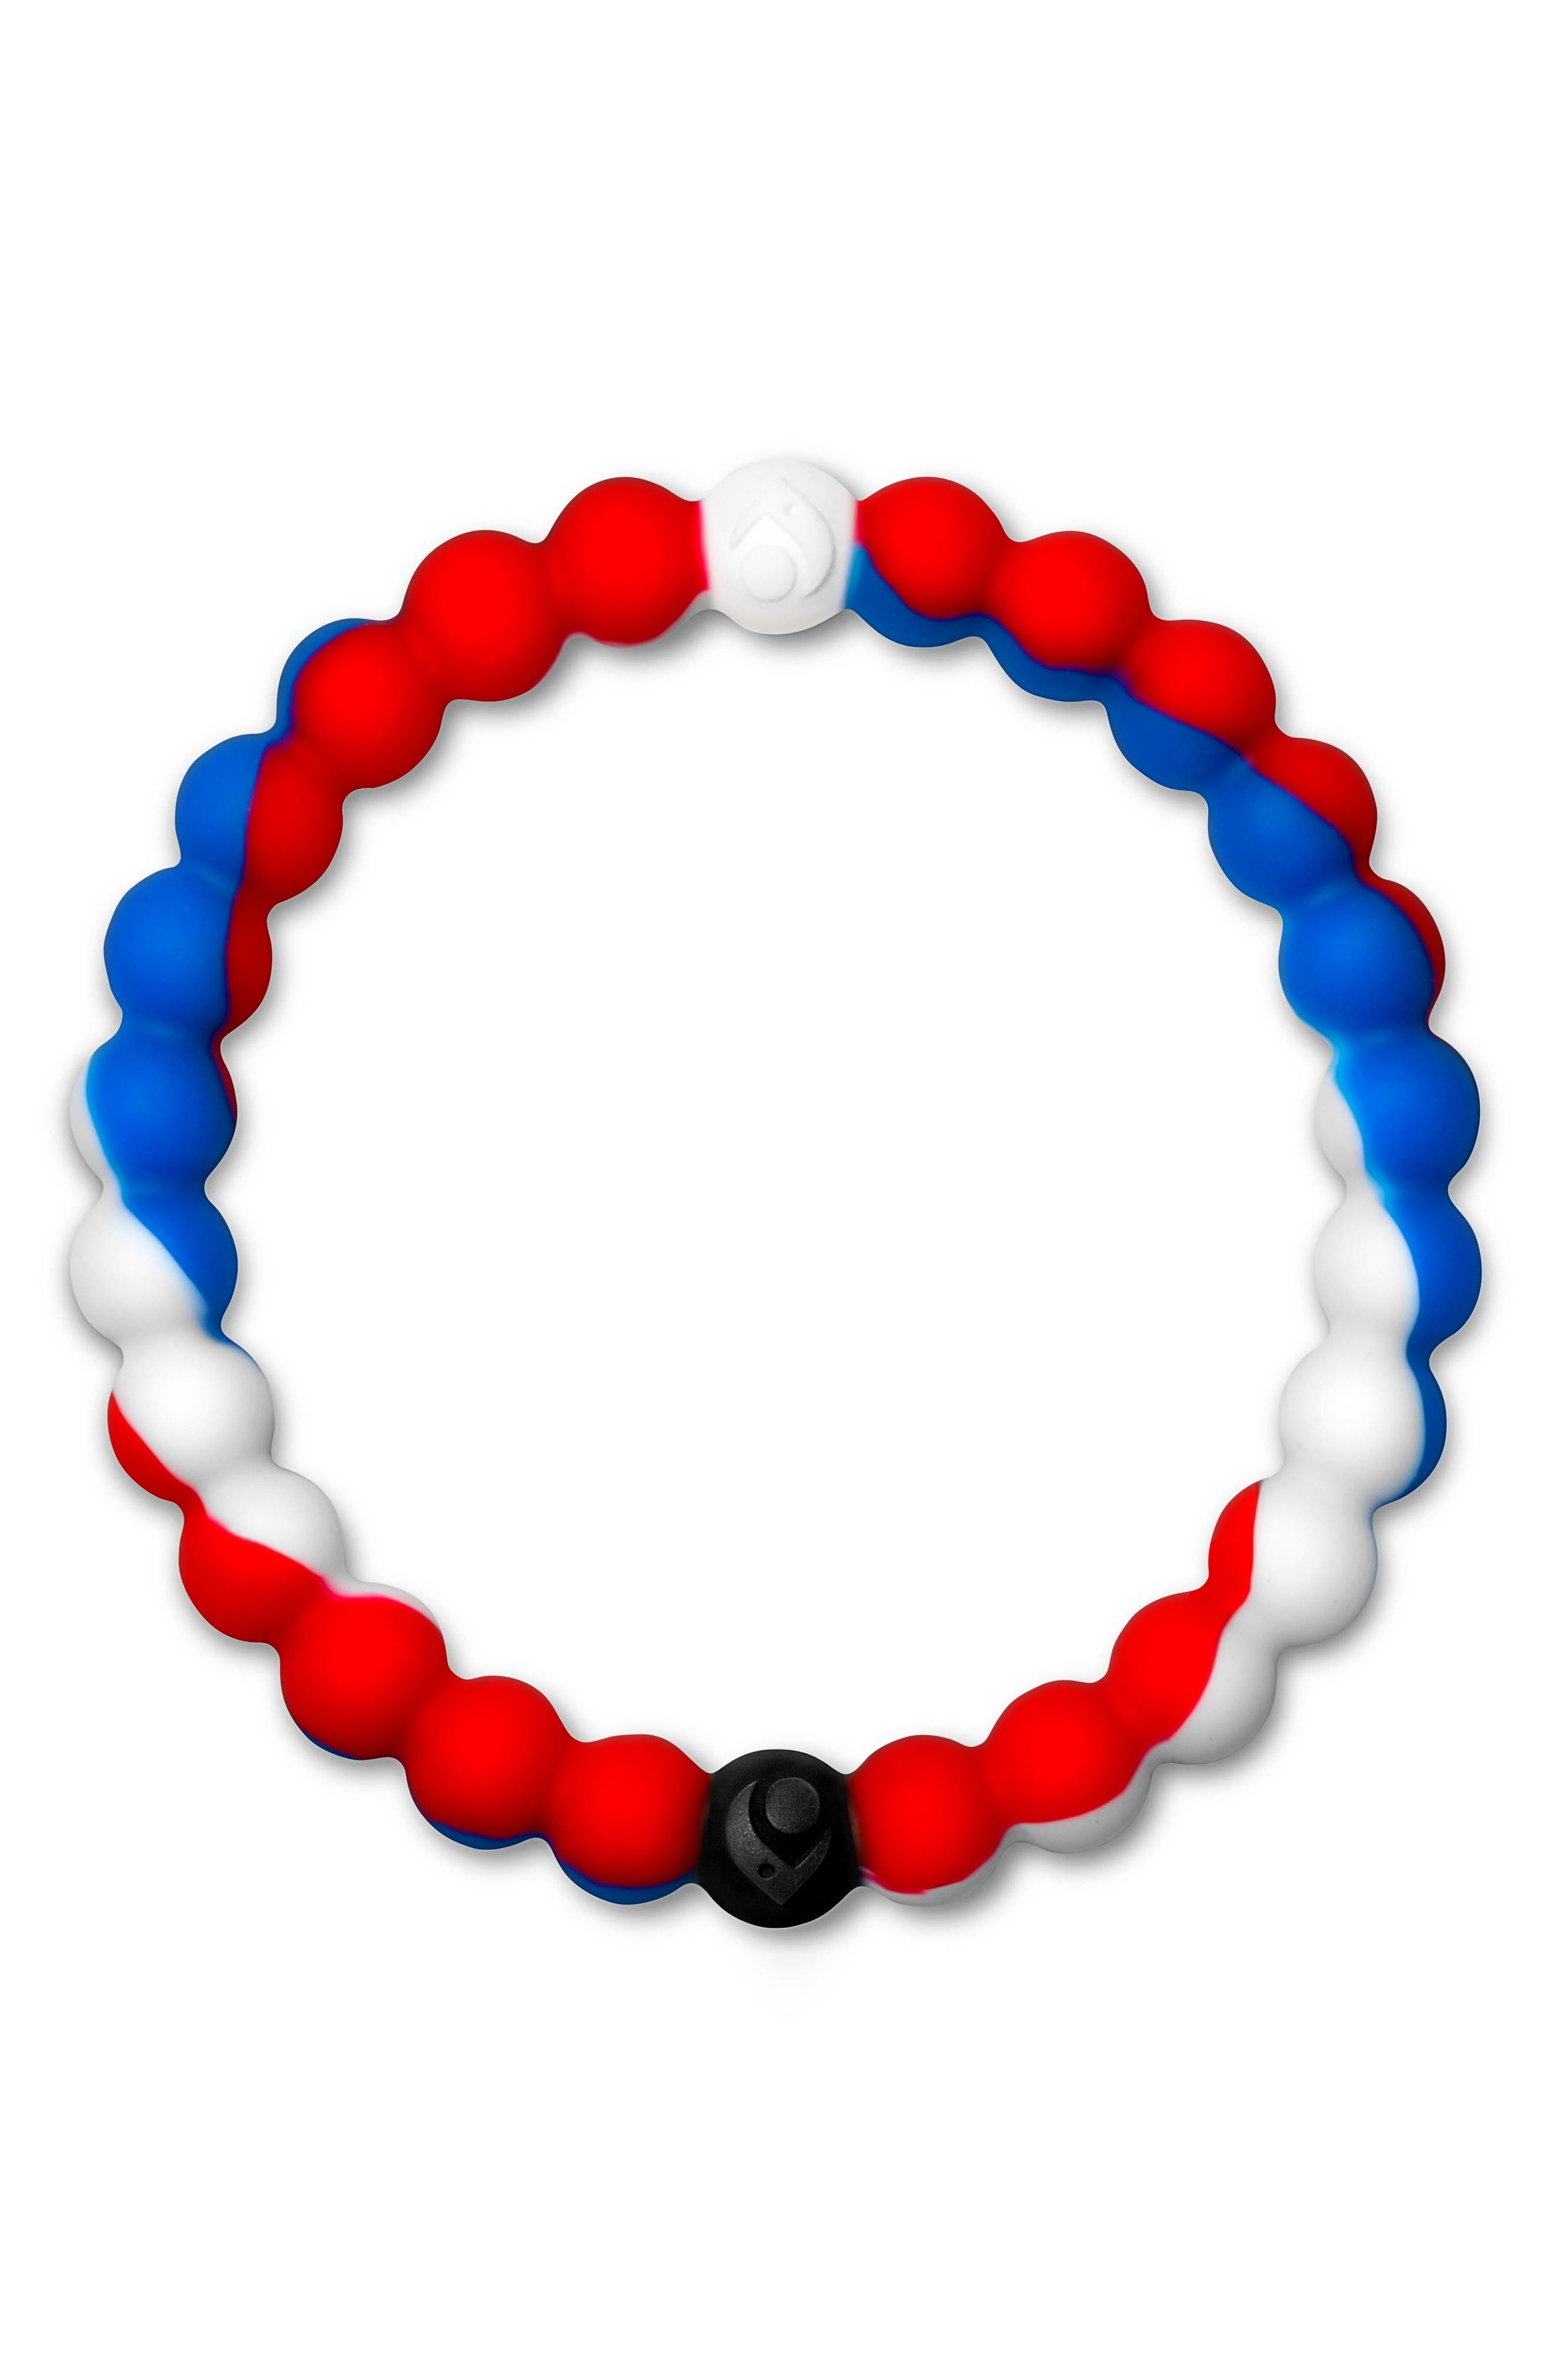 Wear Your World Bracelet,                         Main,                         color, Red White And Blue